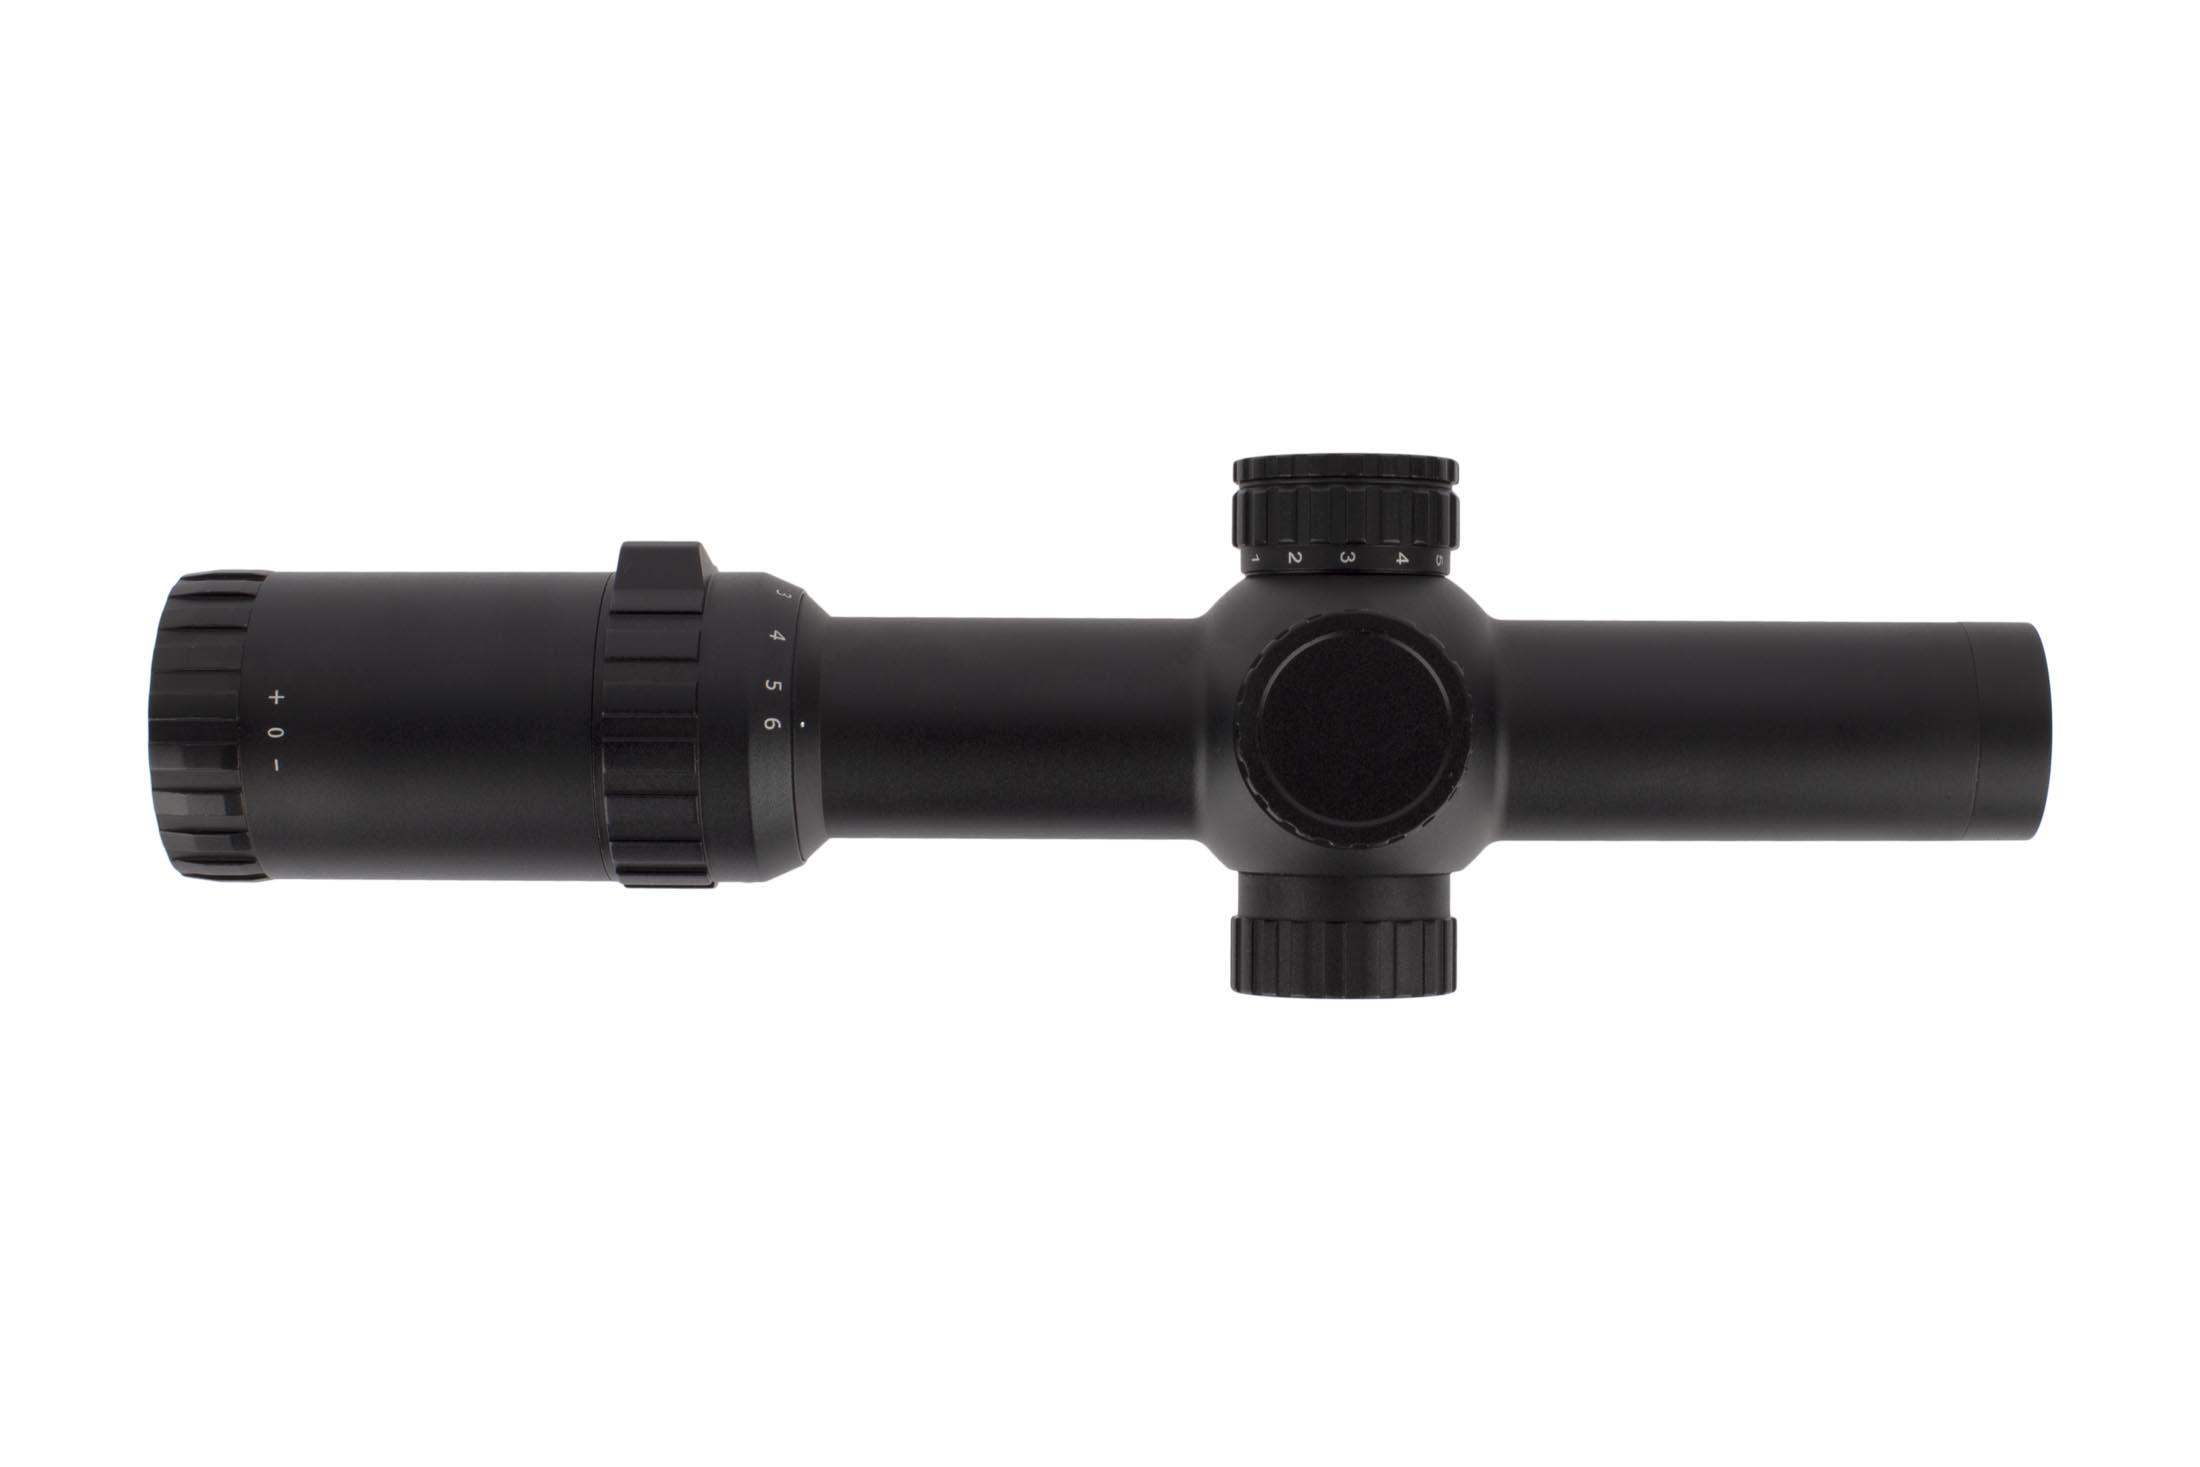 Primary Arms 1-6X24mm SFP Rifle Scope GEN III - Illuminated K.I.S.S. Reticle